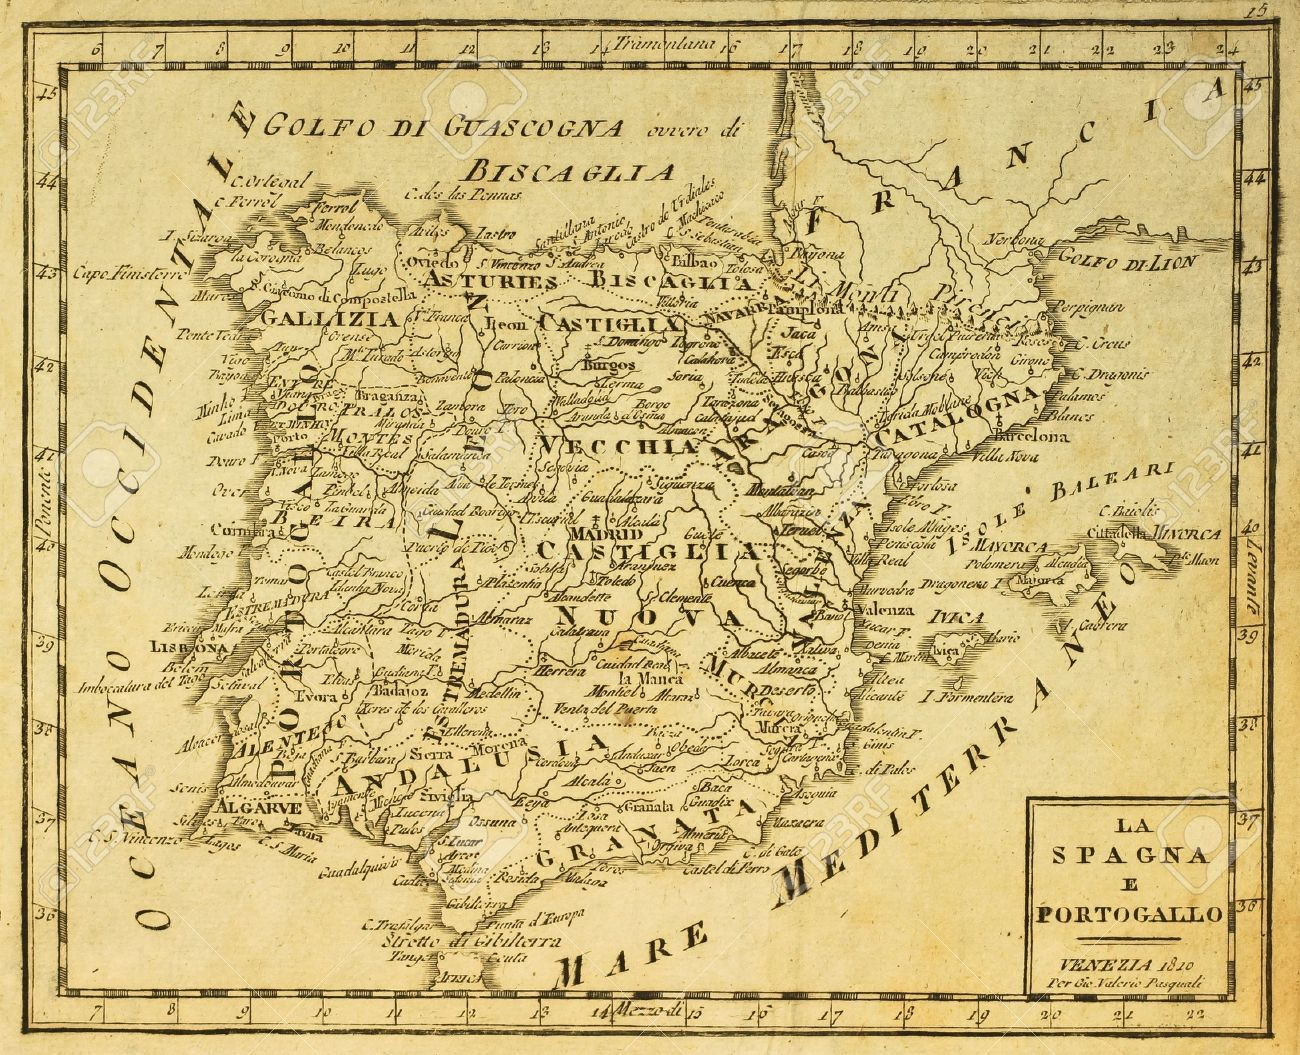 Map Of Spain Old.Spain And Portugal Old Map Published In Venezia Italy 1810